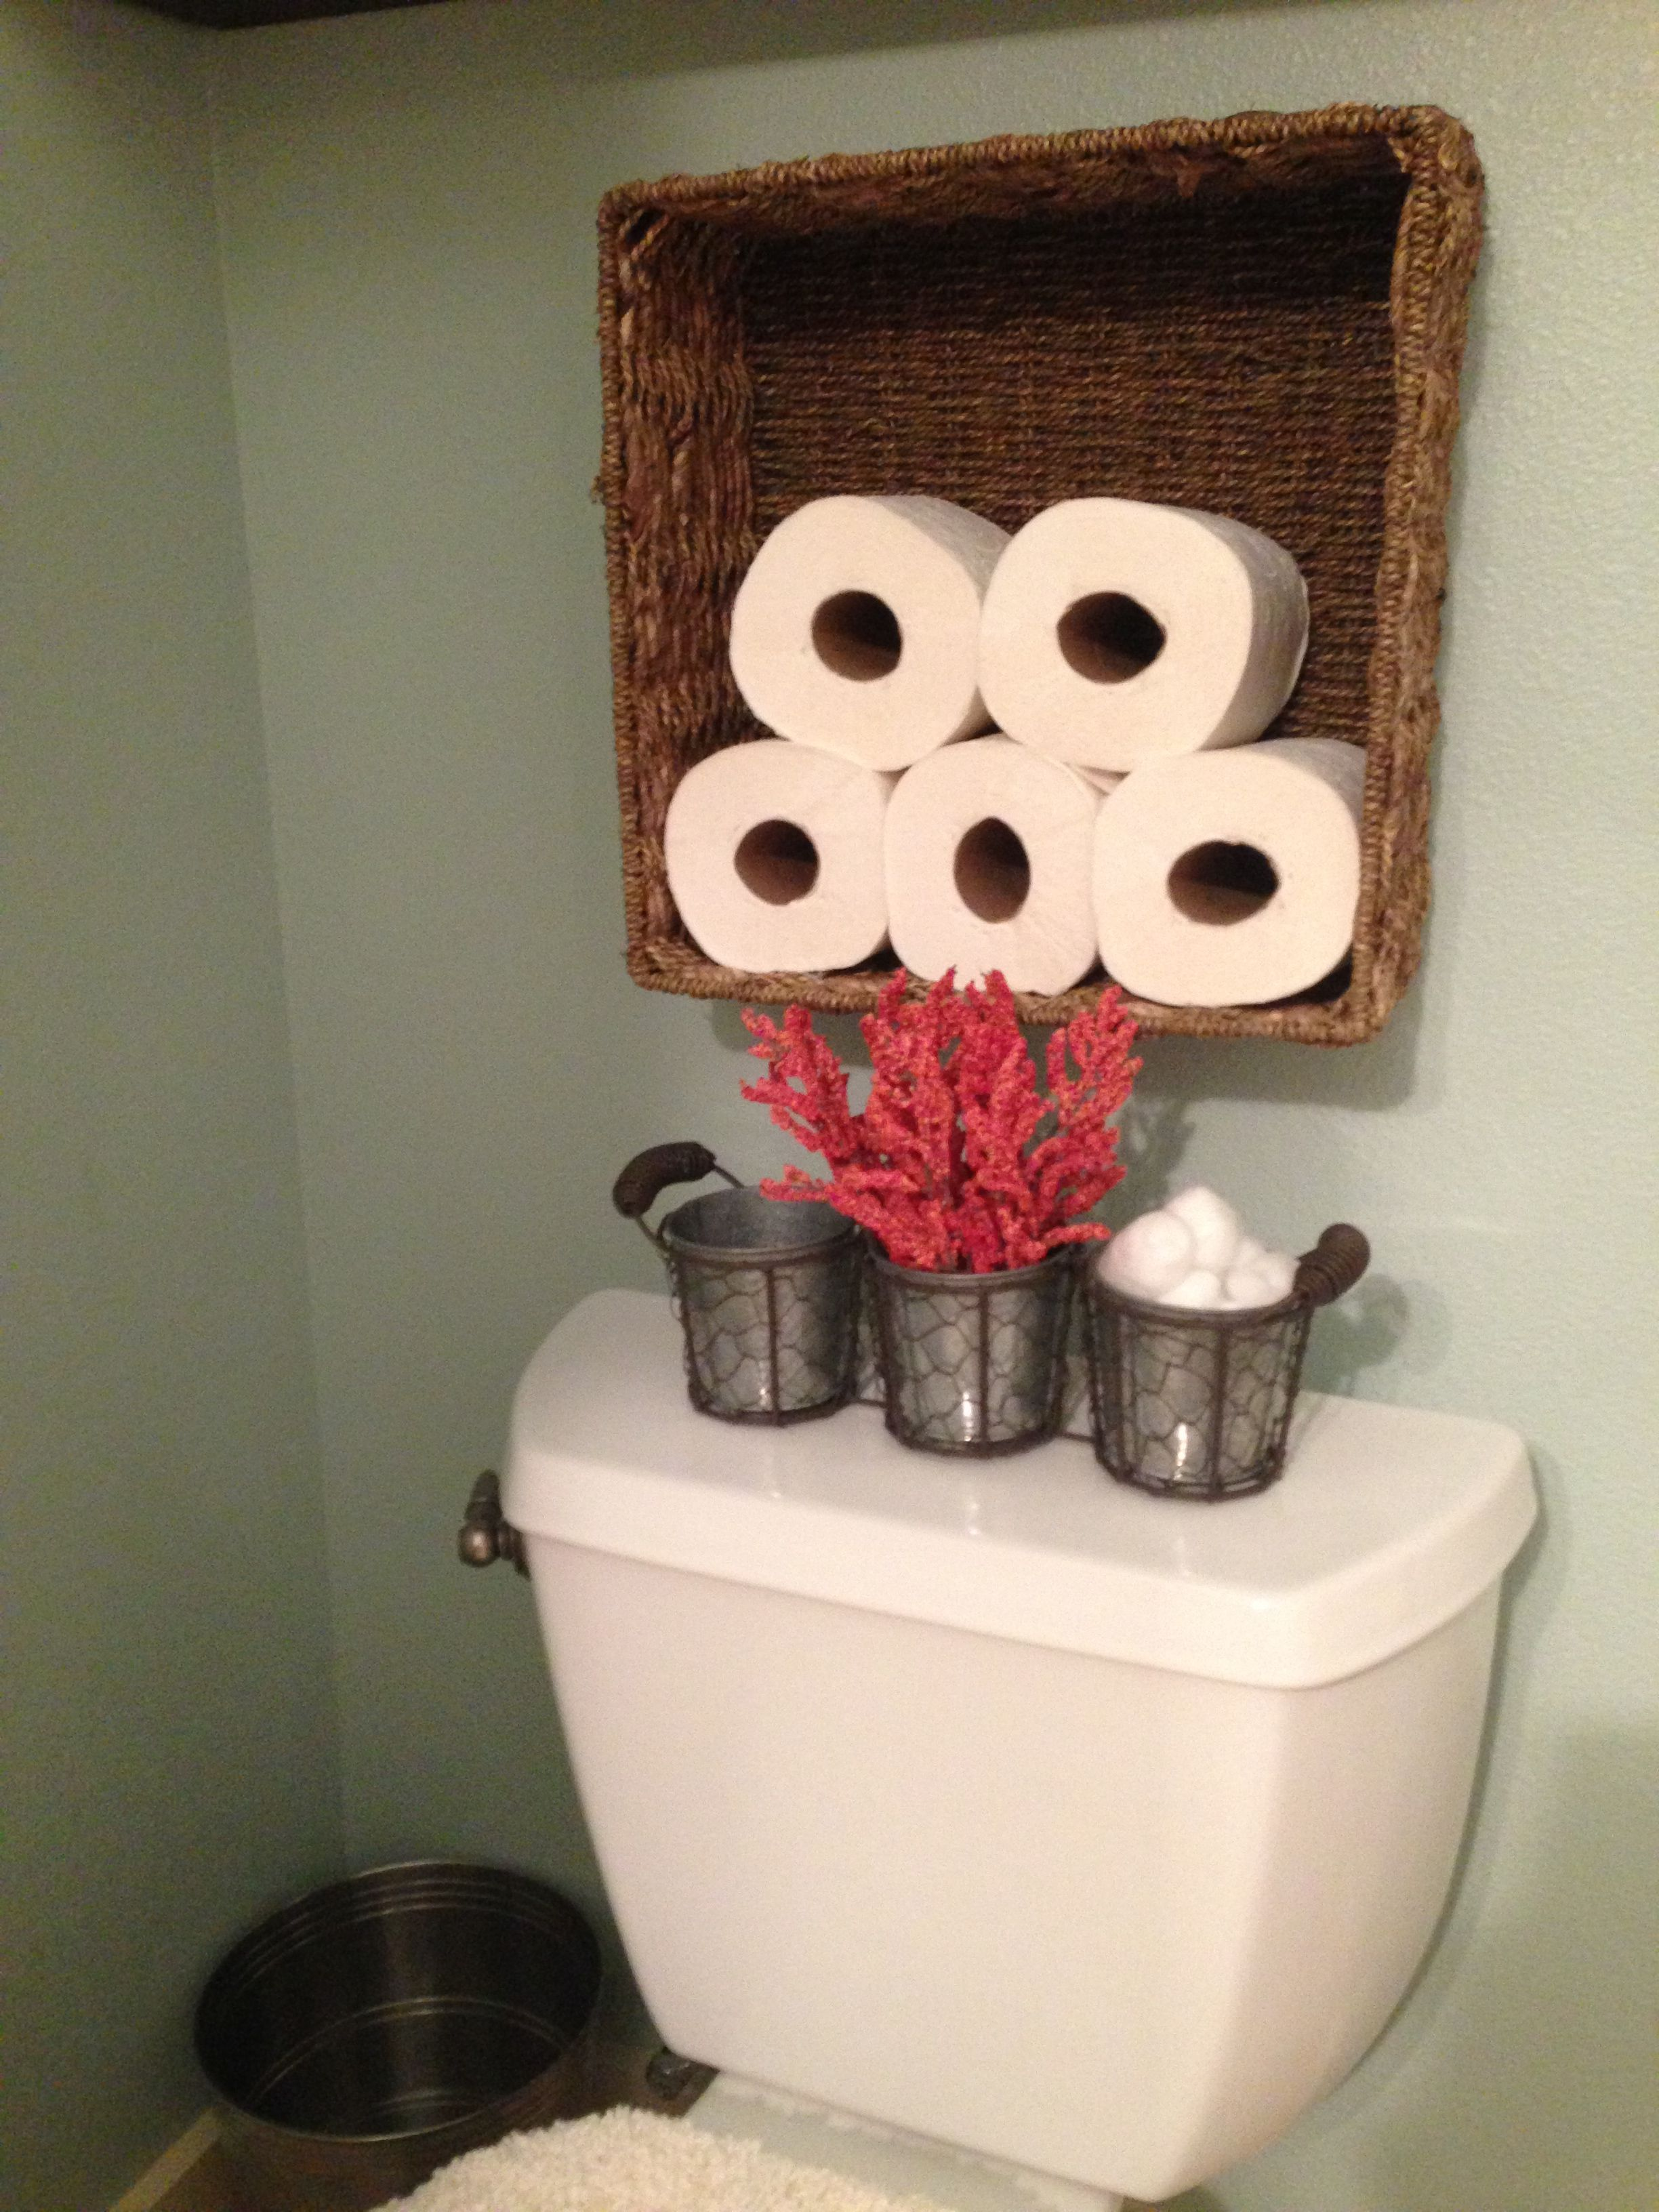 Toilet Paper Storage I Would Use An Old Wood Crate Instead